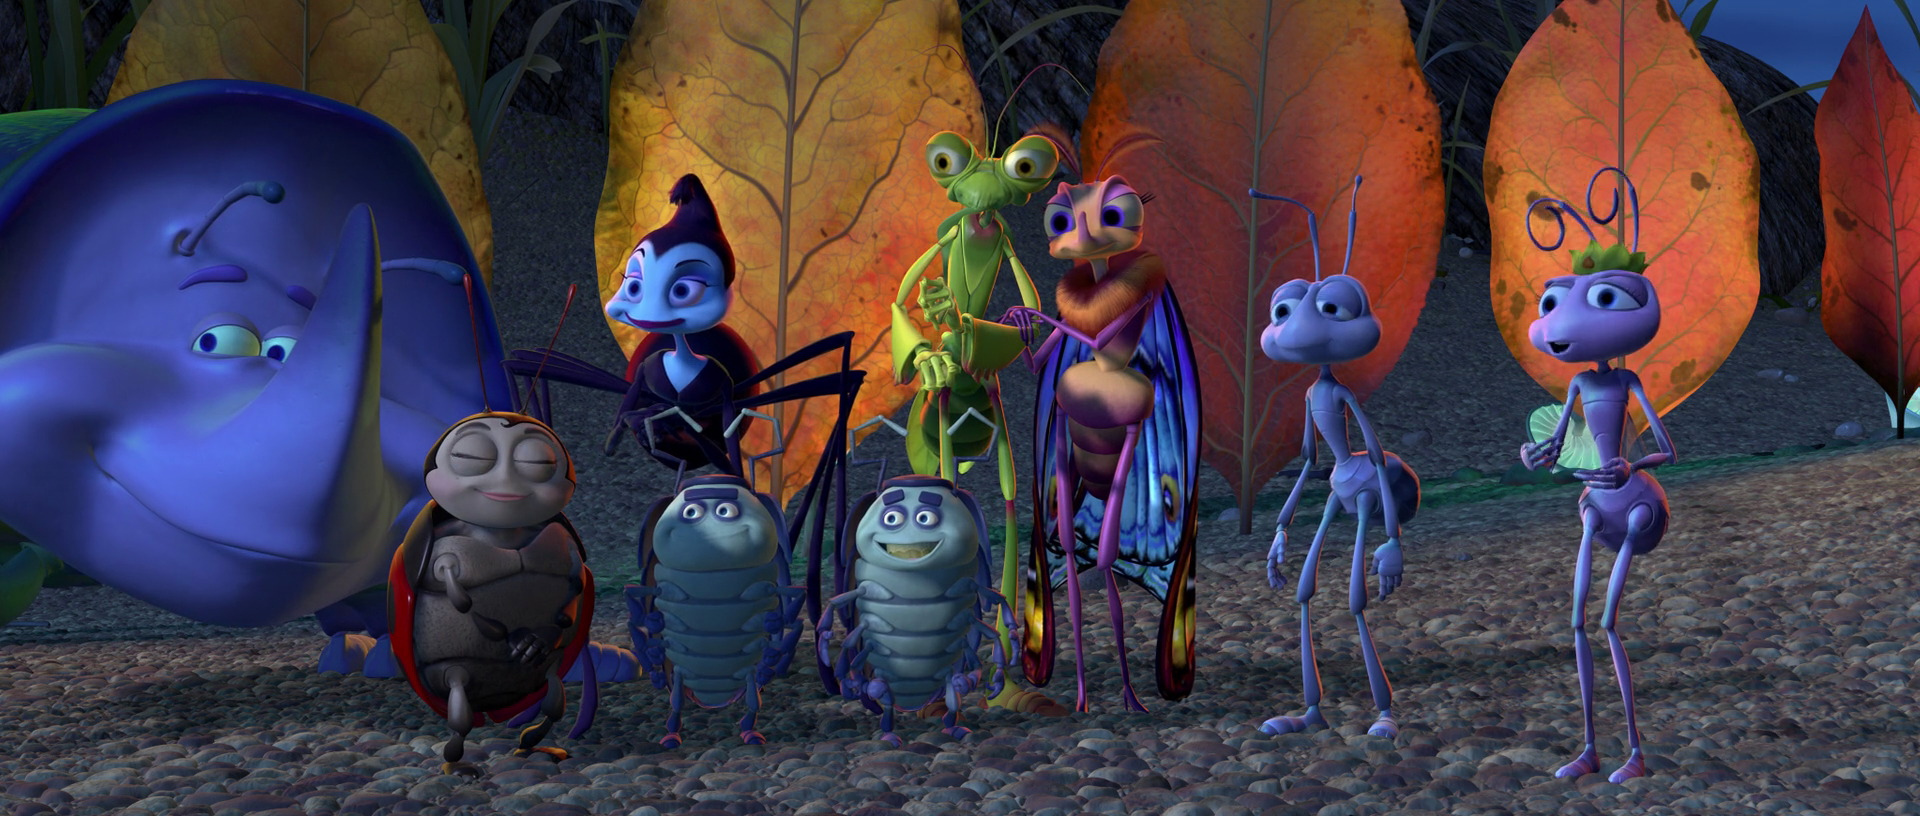 The troupe of circus insects in A Bug's Life (1998)